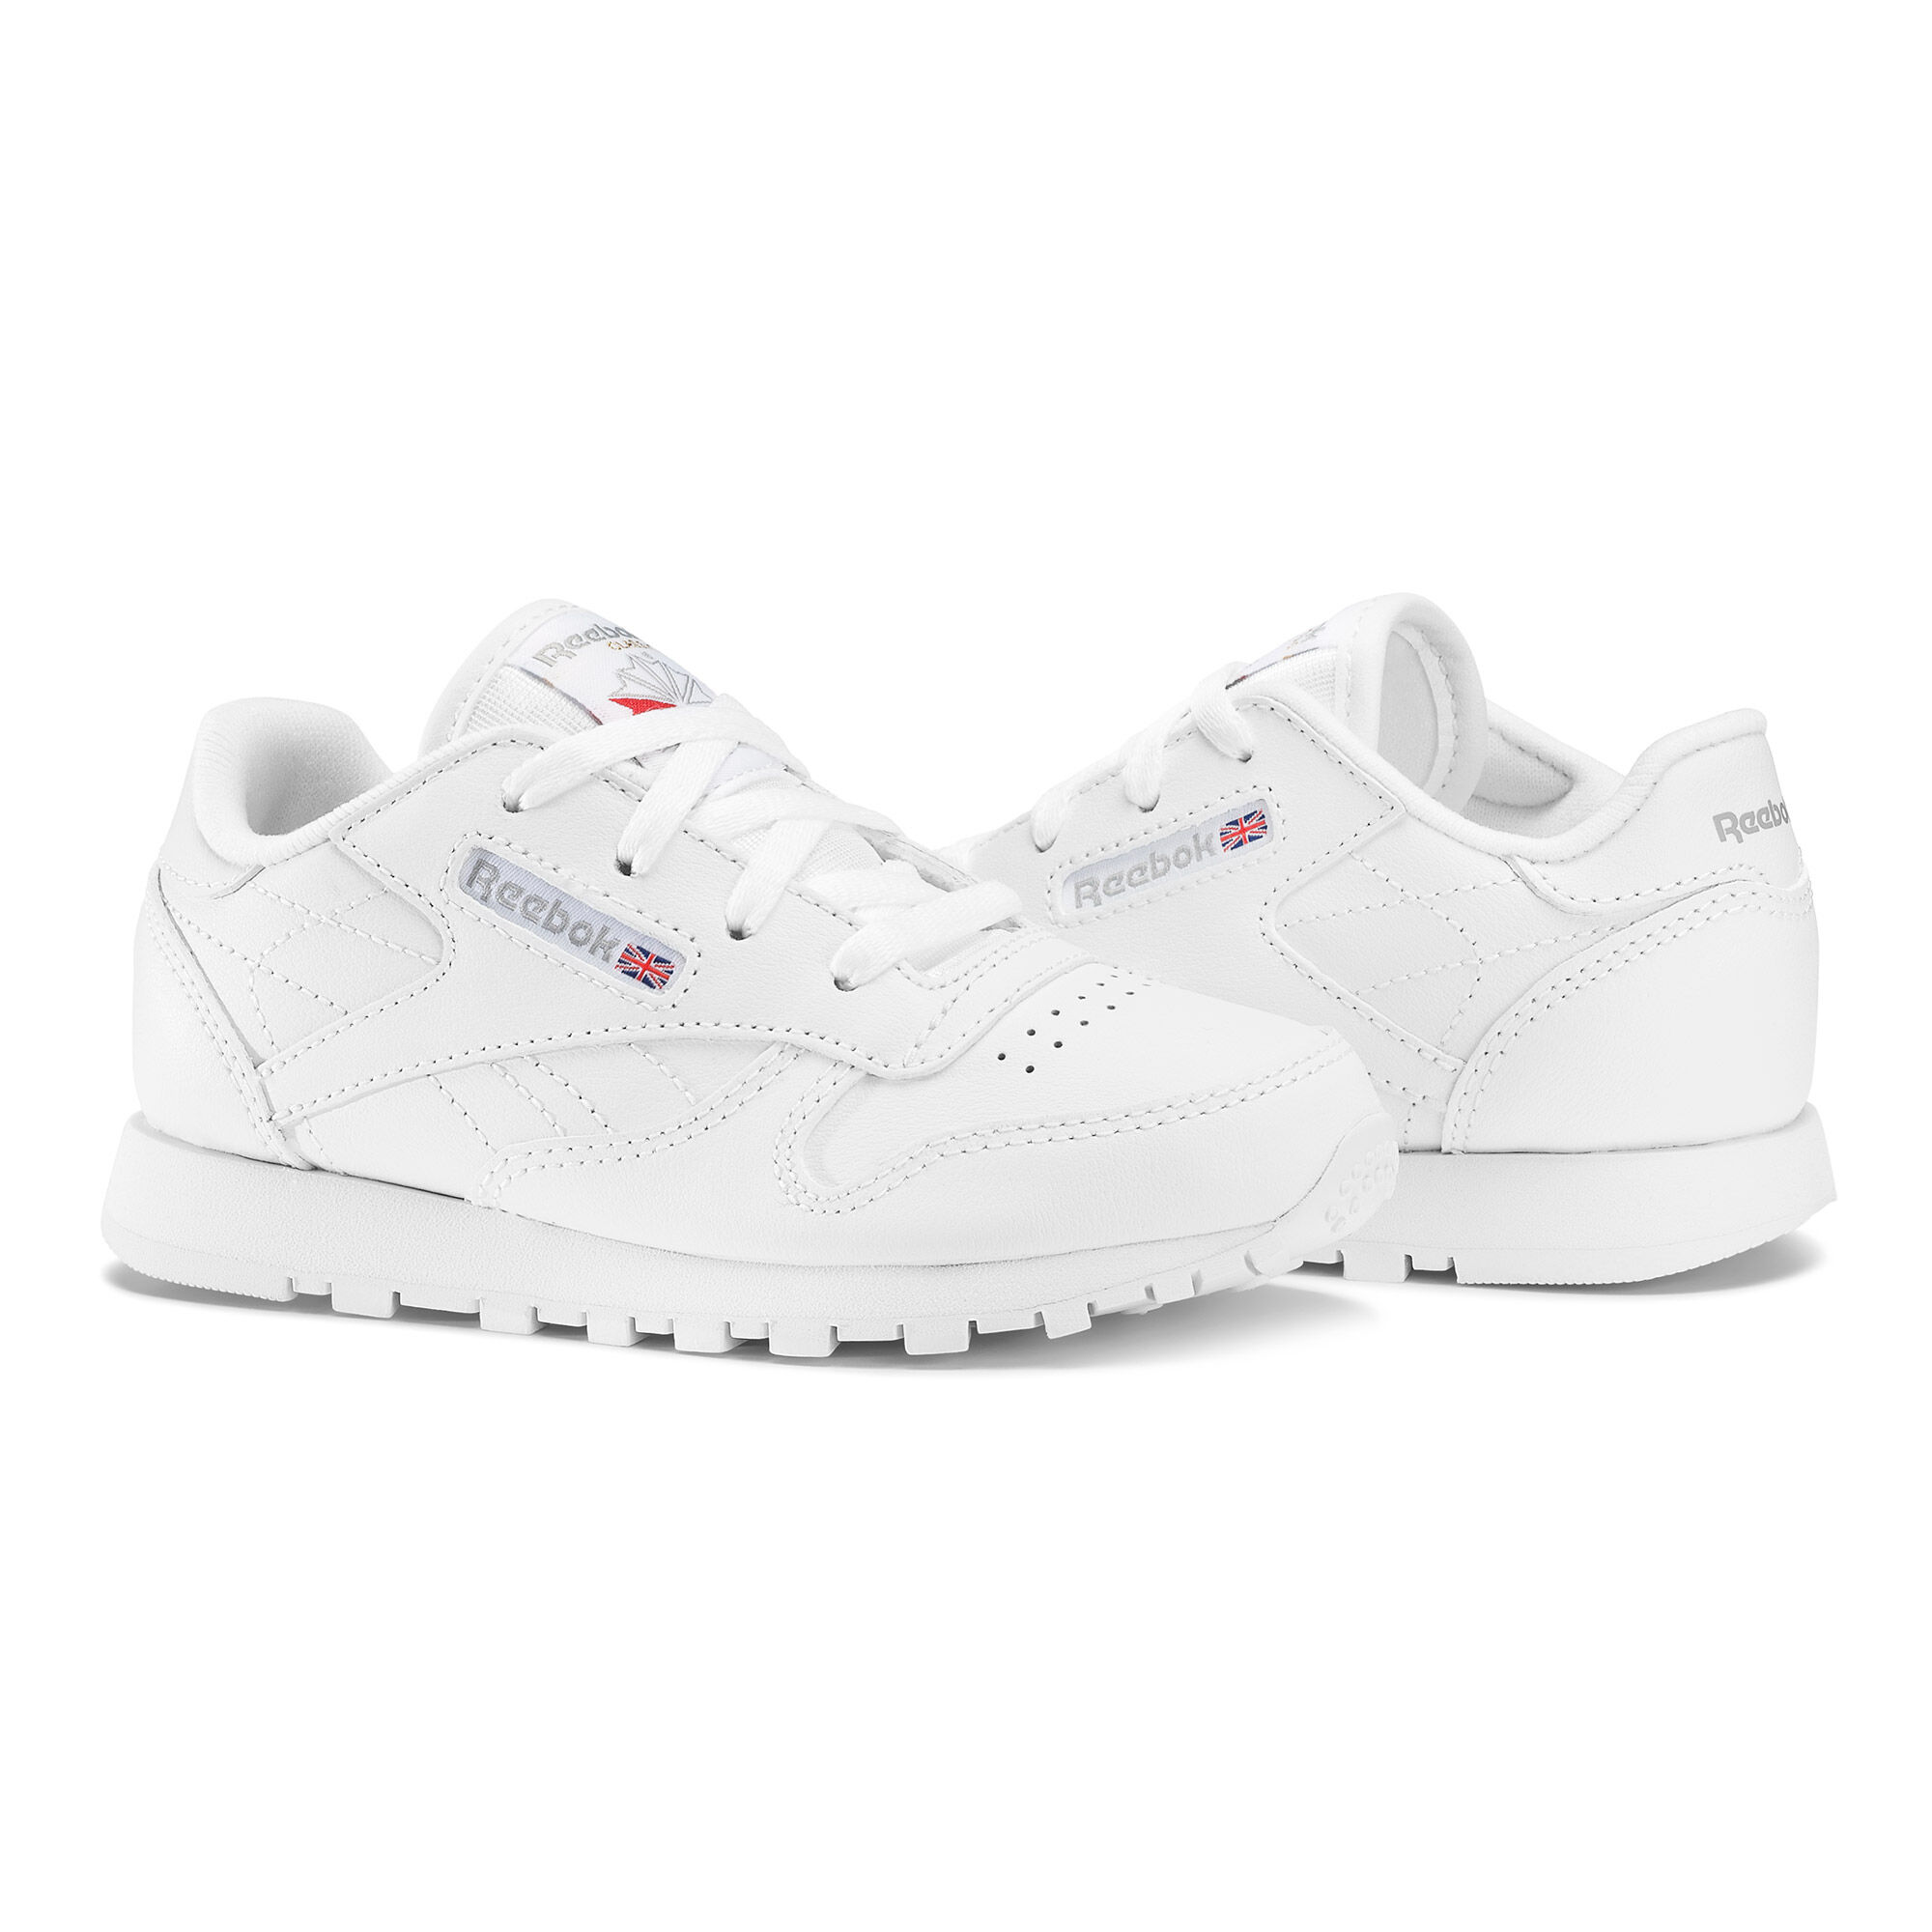 Reebok Femme Chaussures / Baskets CL Leather Girl Squad blanc 36.5 ANn130vLp